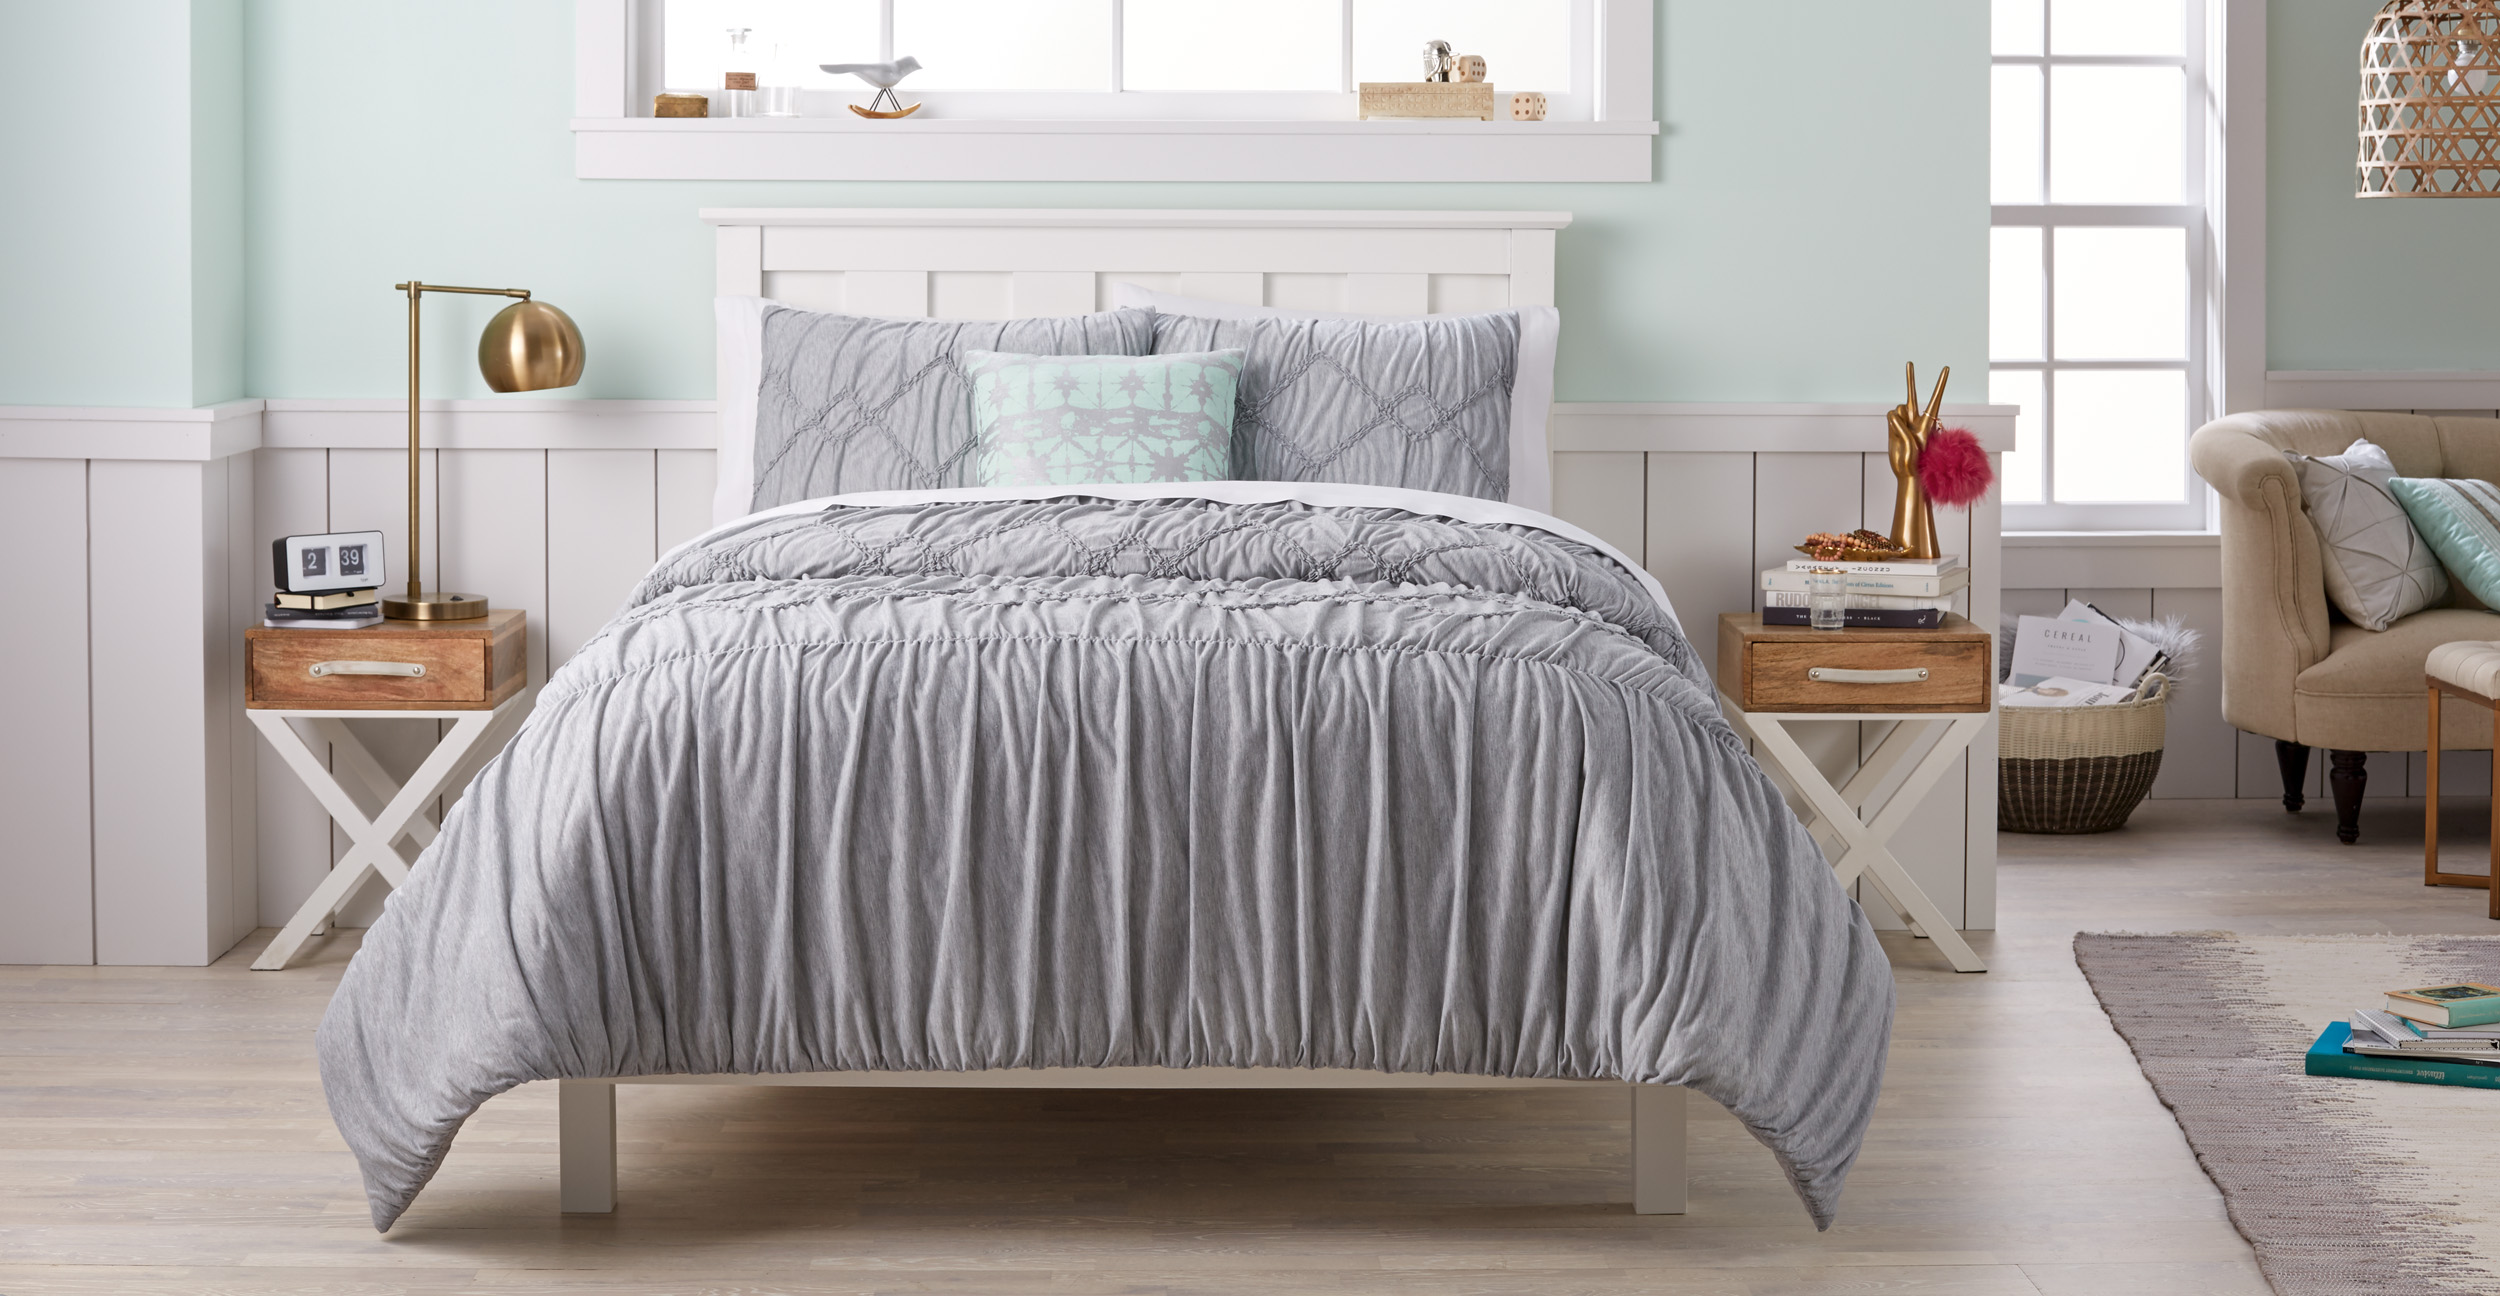 Bedding_TexturedGrey.jpg